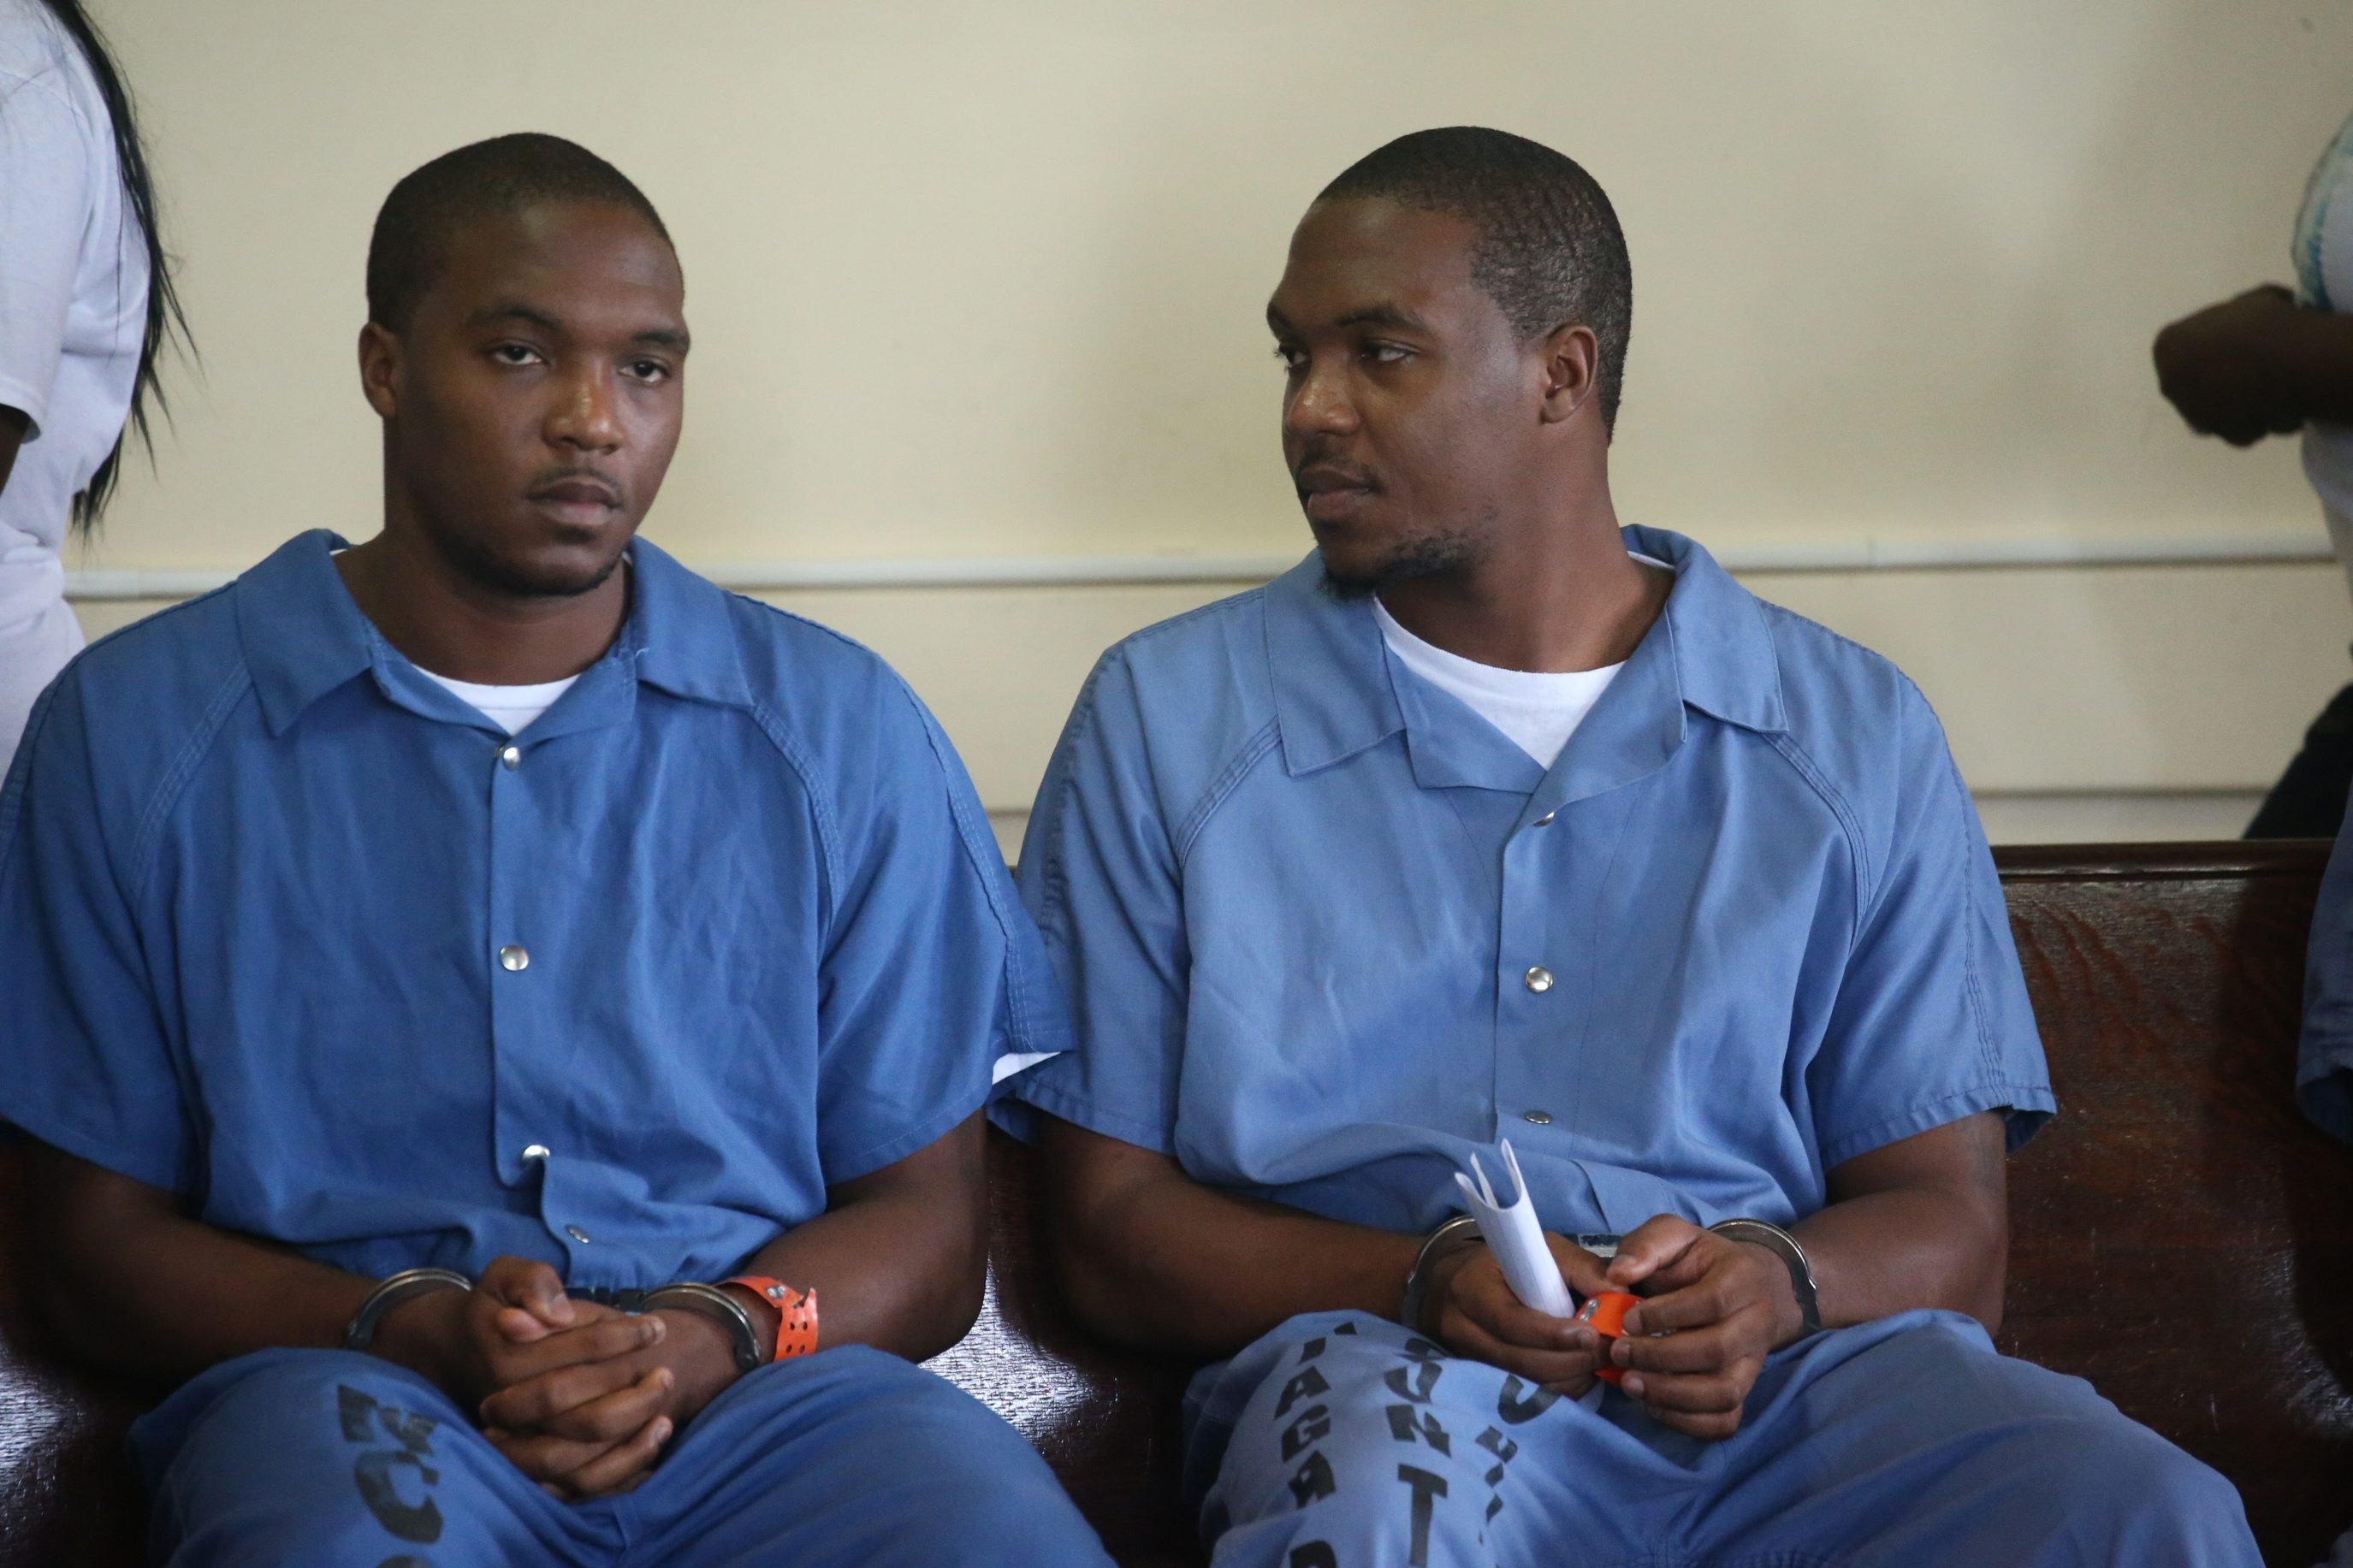 Twins Kion D.  McTyere, left,  and Dion K. McTyere  got identical 20-year sentences in a Niagara Falls killing.